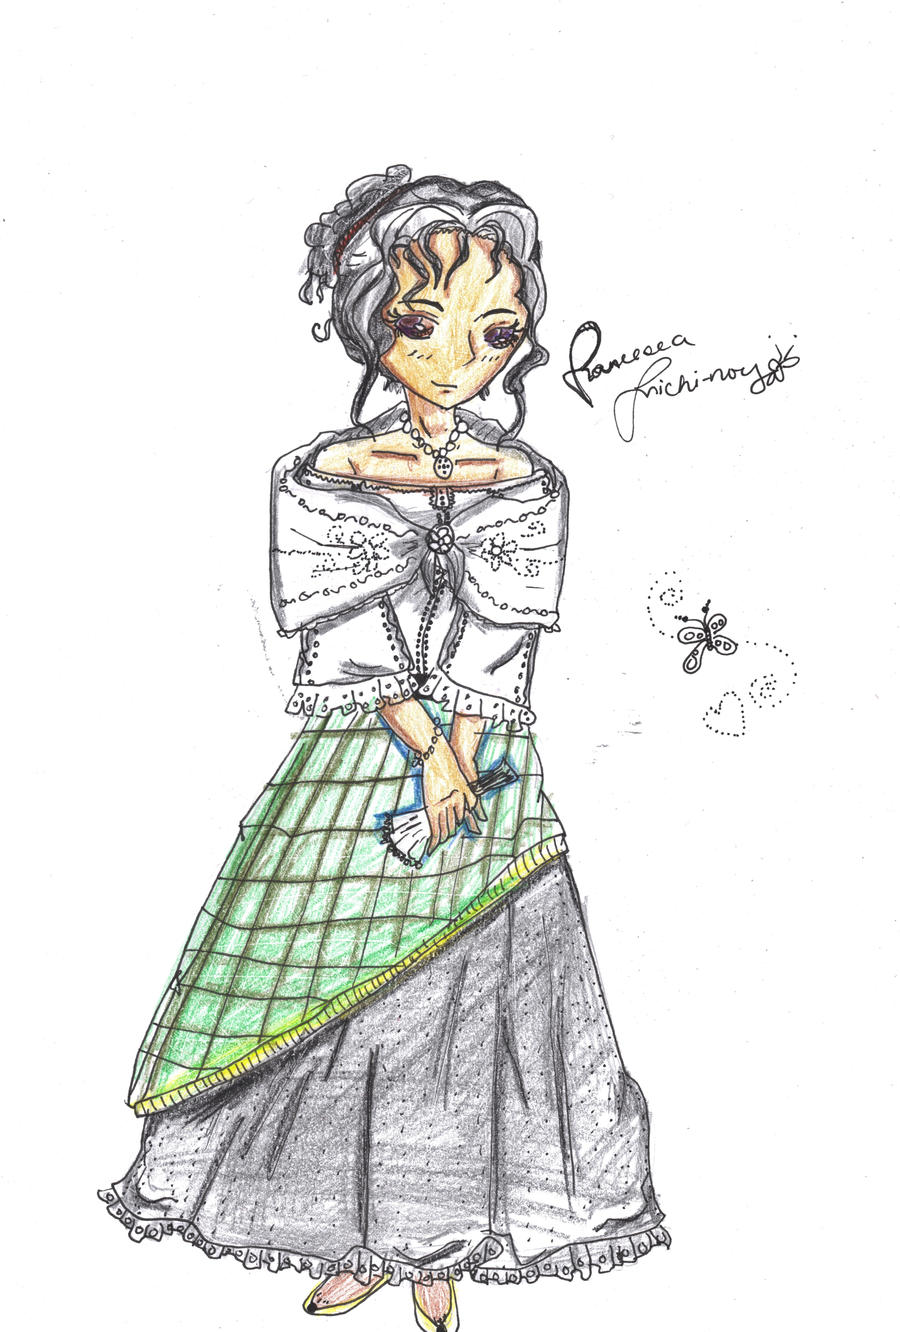 Philippine Costumes: Costume at the Fin de Siecle - Maria Clara